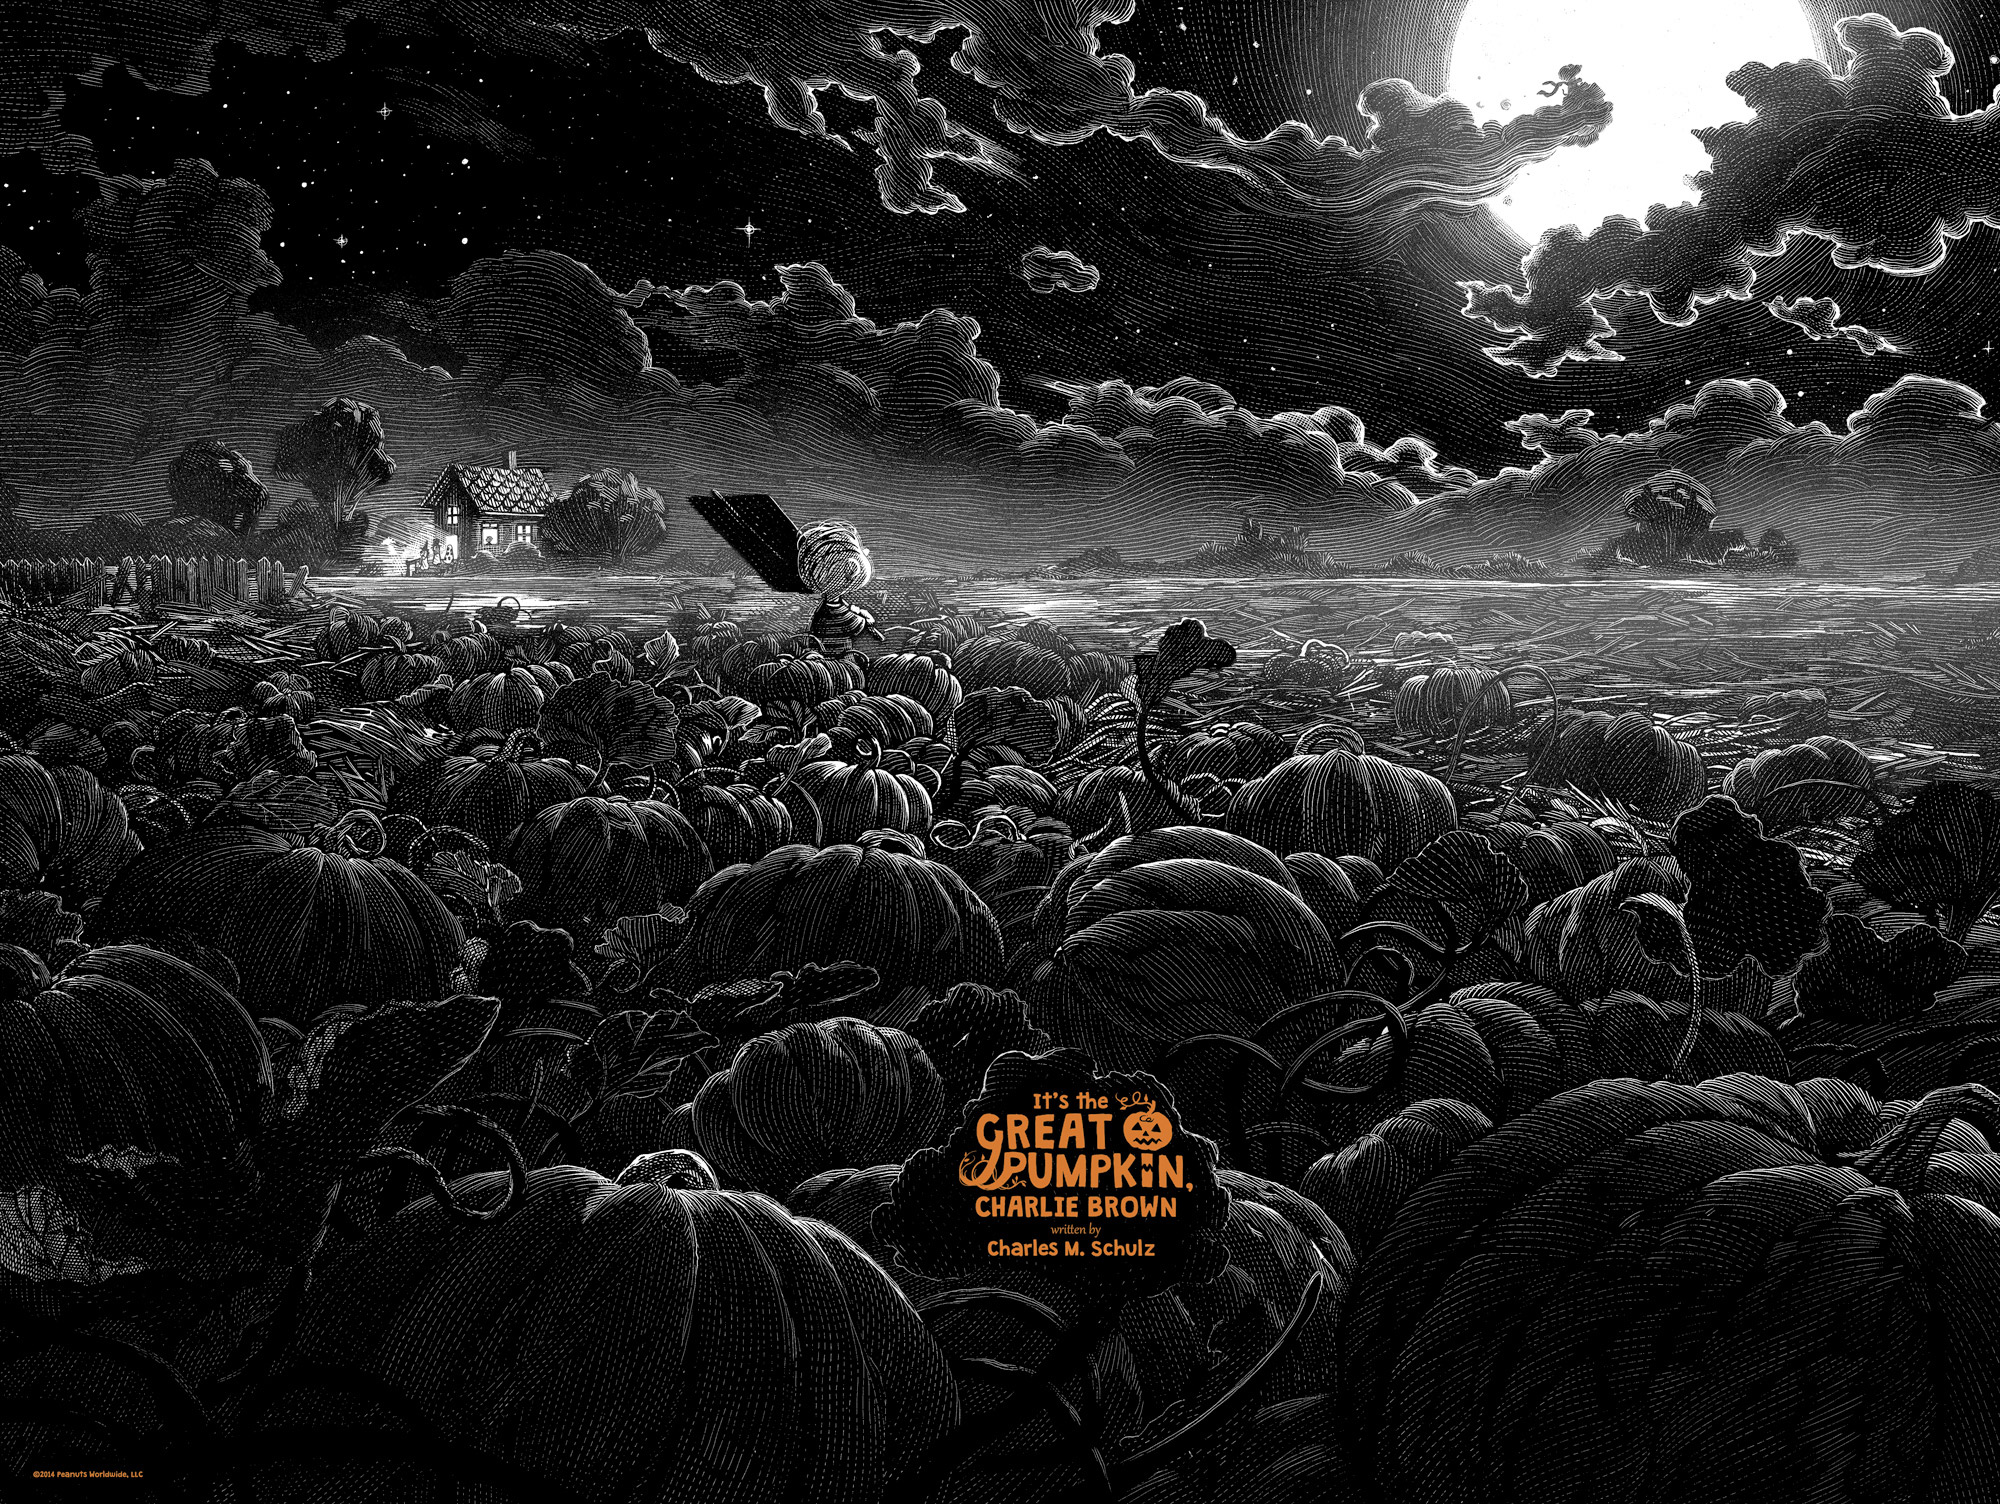 It's The Great Pumpkin, Charlie Brown Print by Nicolas Delort v 1